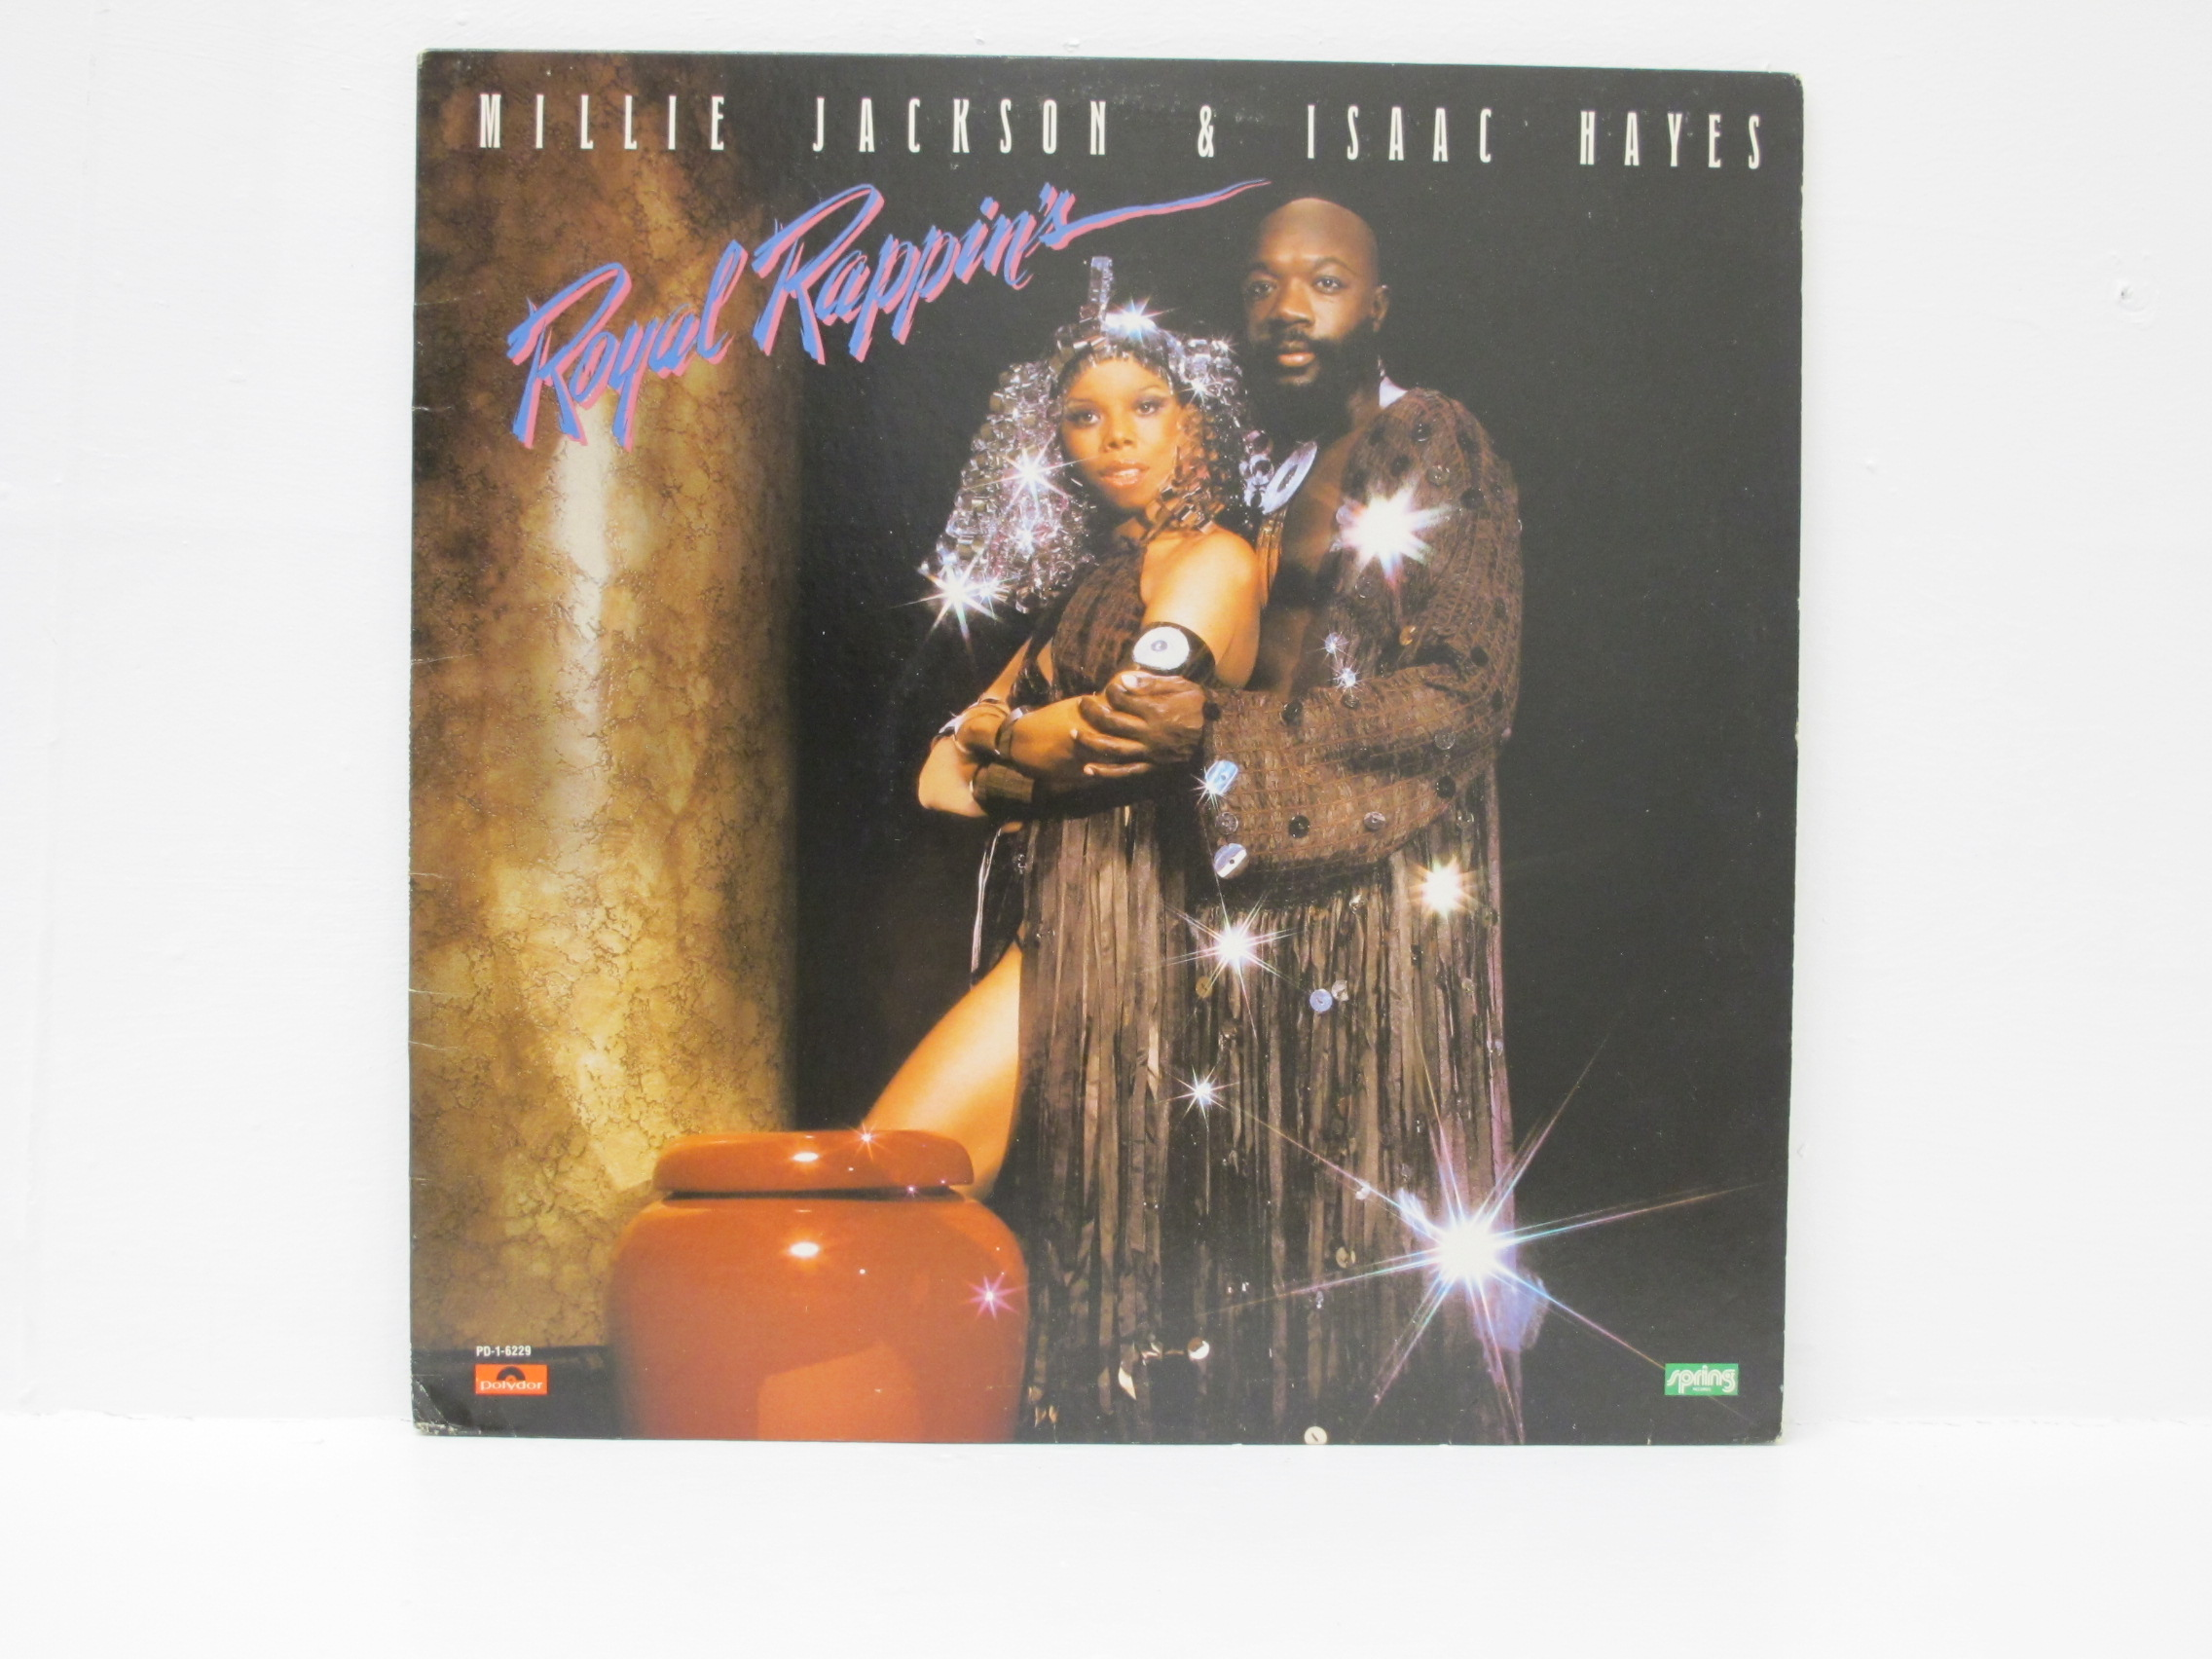 Millie Jackson & Issac Hayes - Royal Rappin's